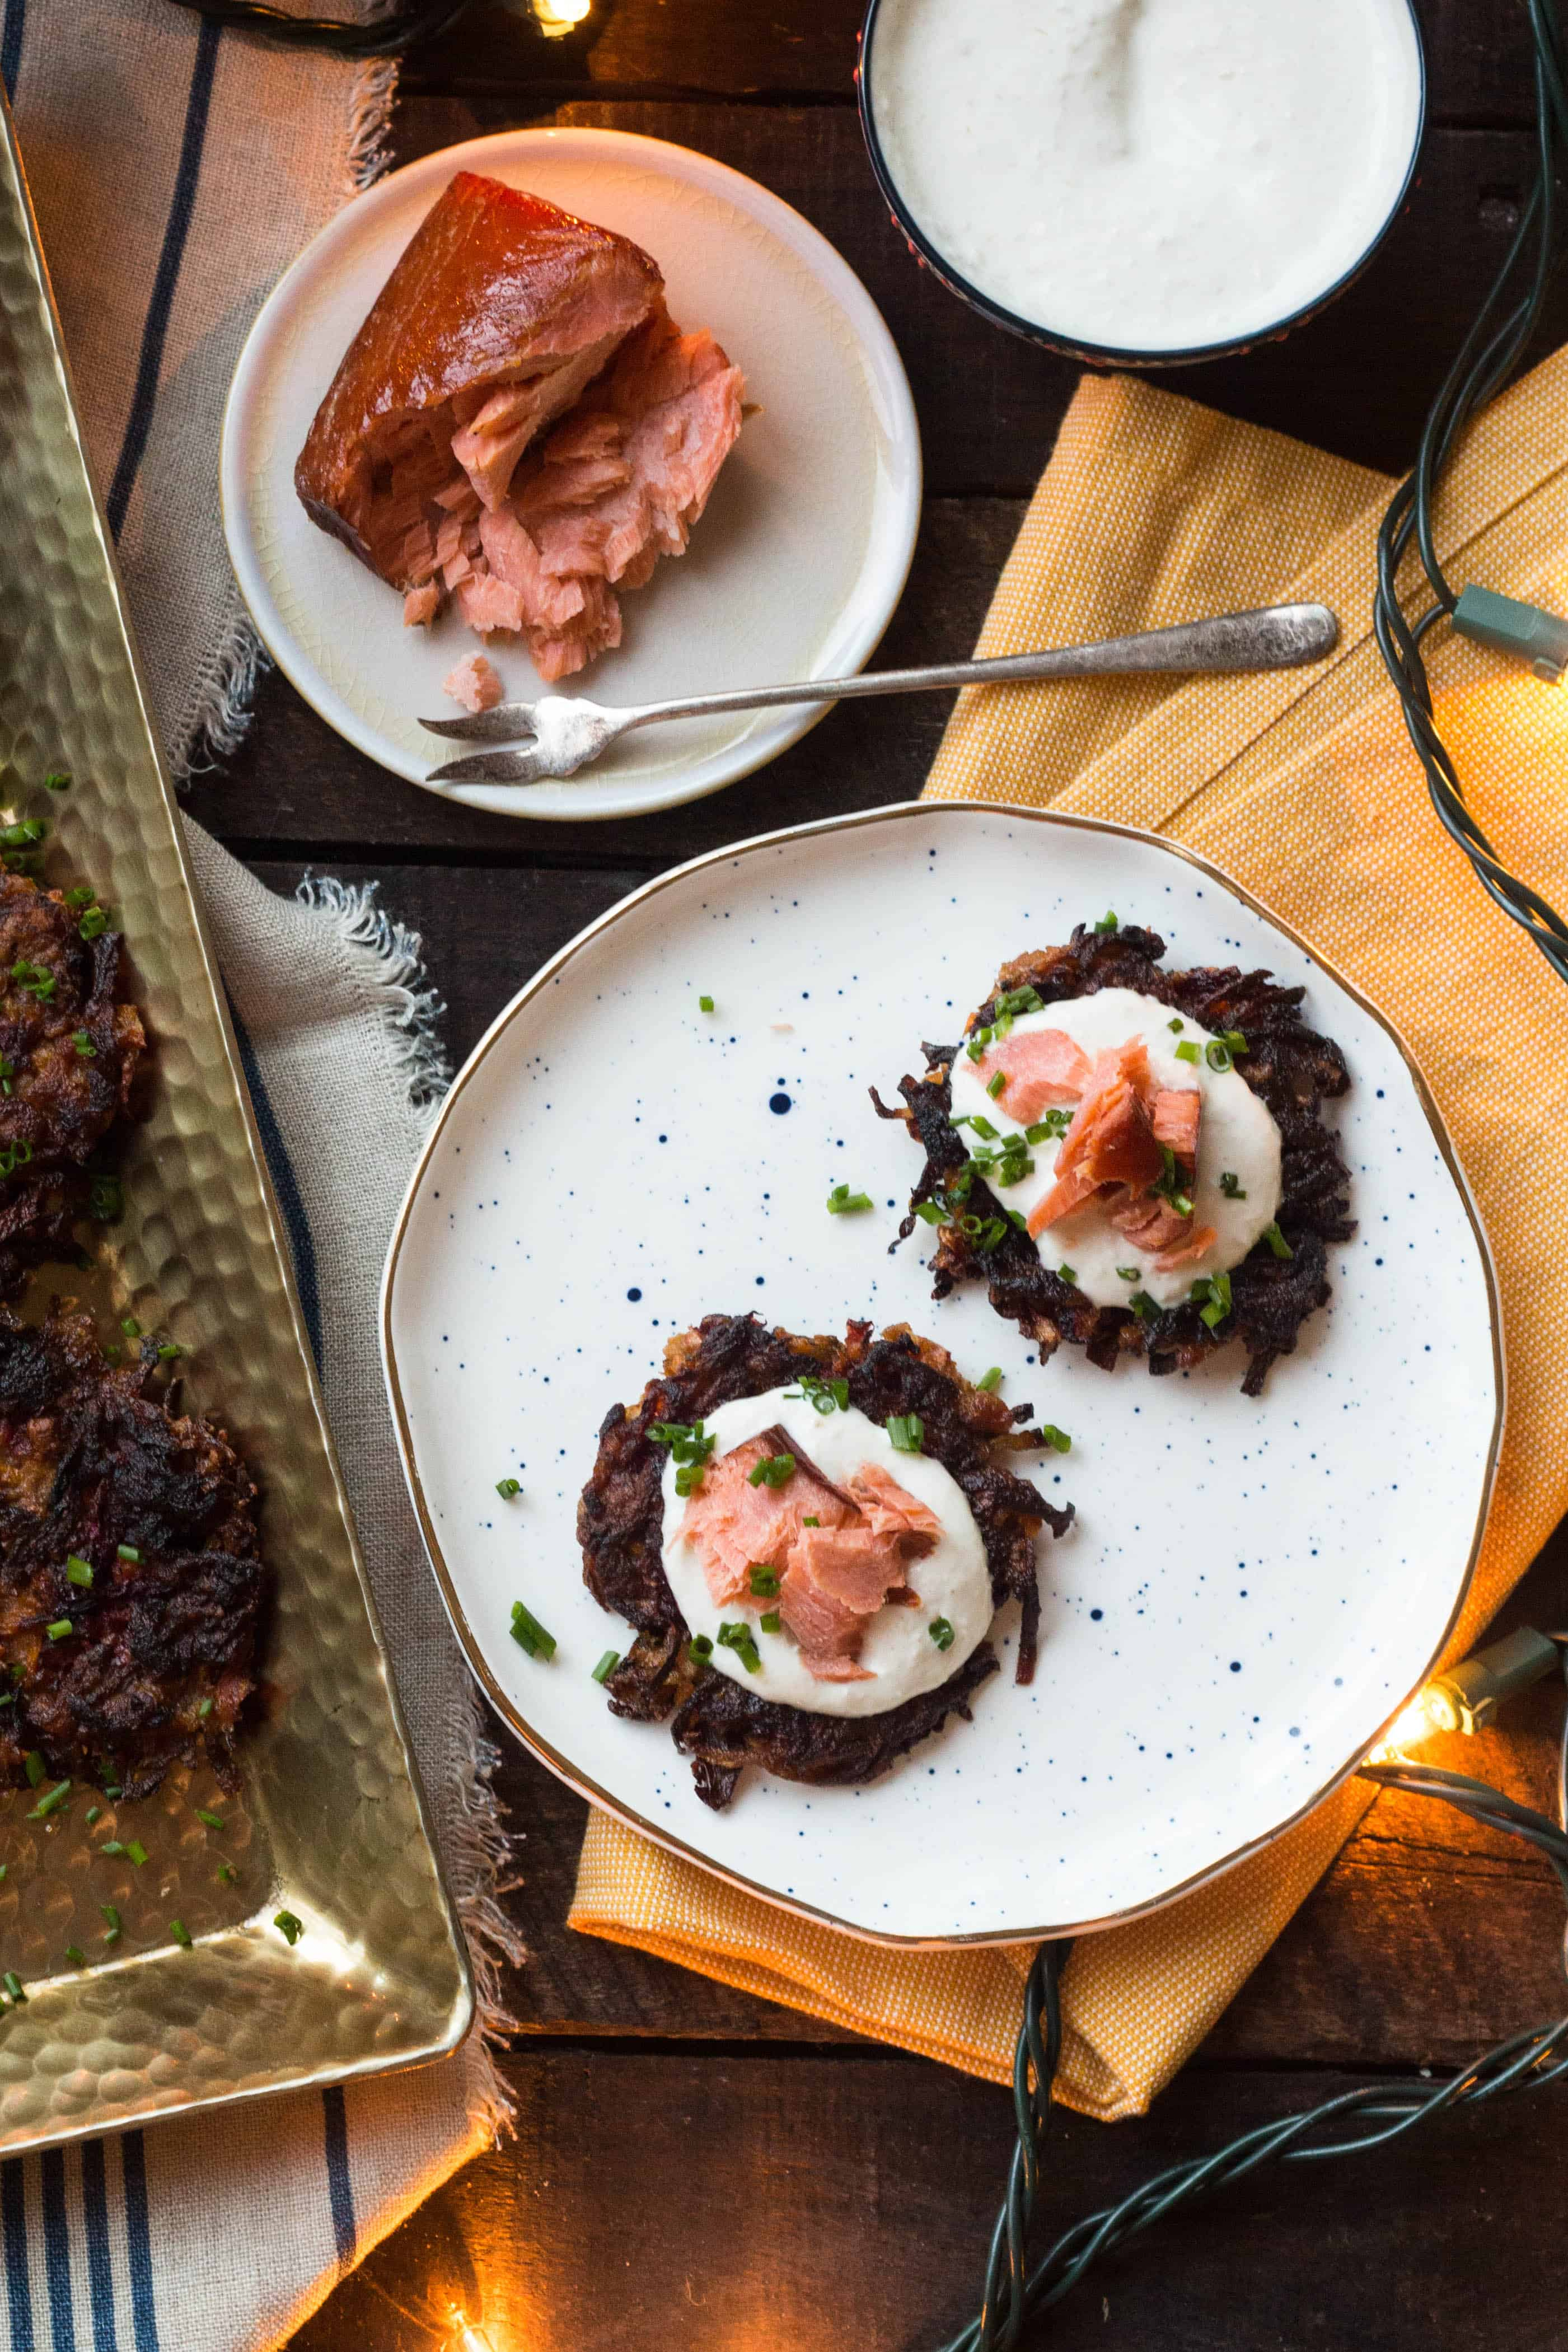 Beet + Carrot Latkes with Smoked Salmon + Horseradish Sour Cream